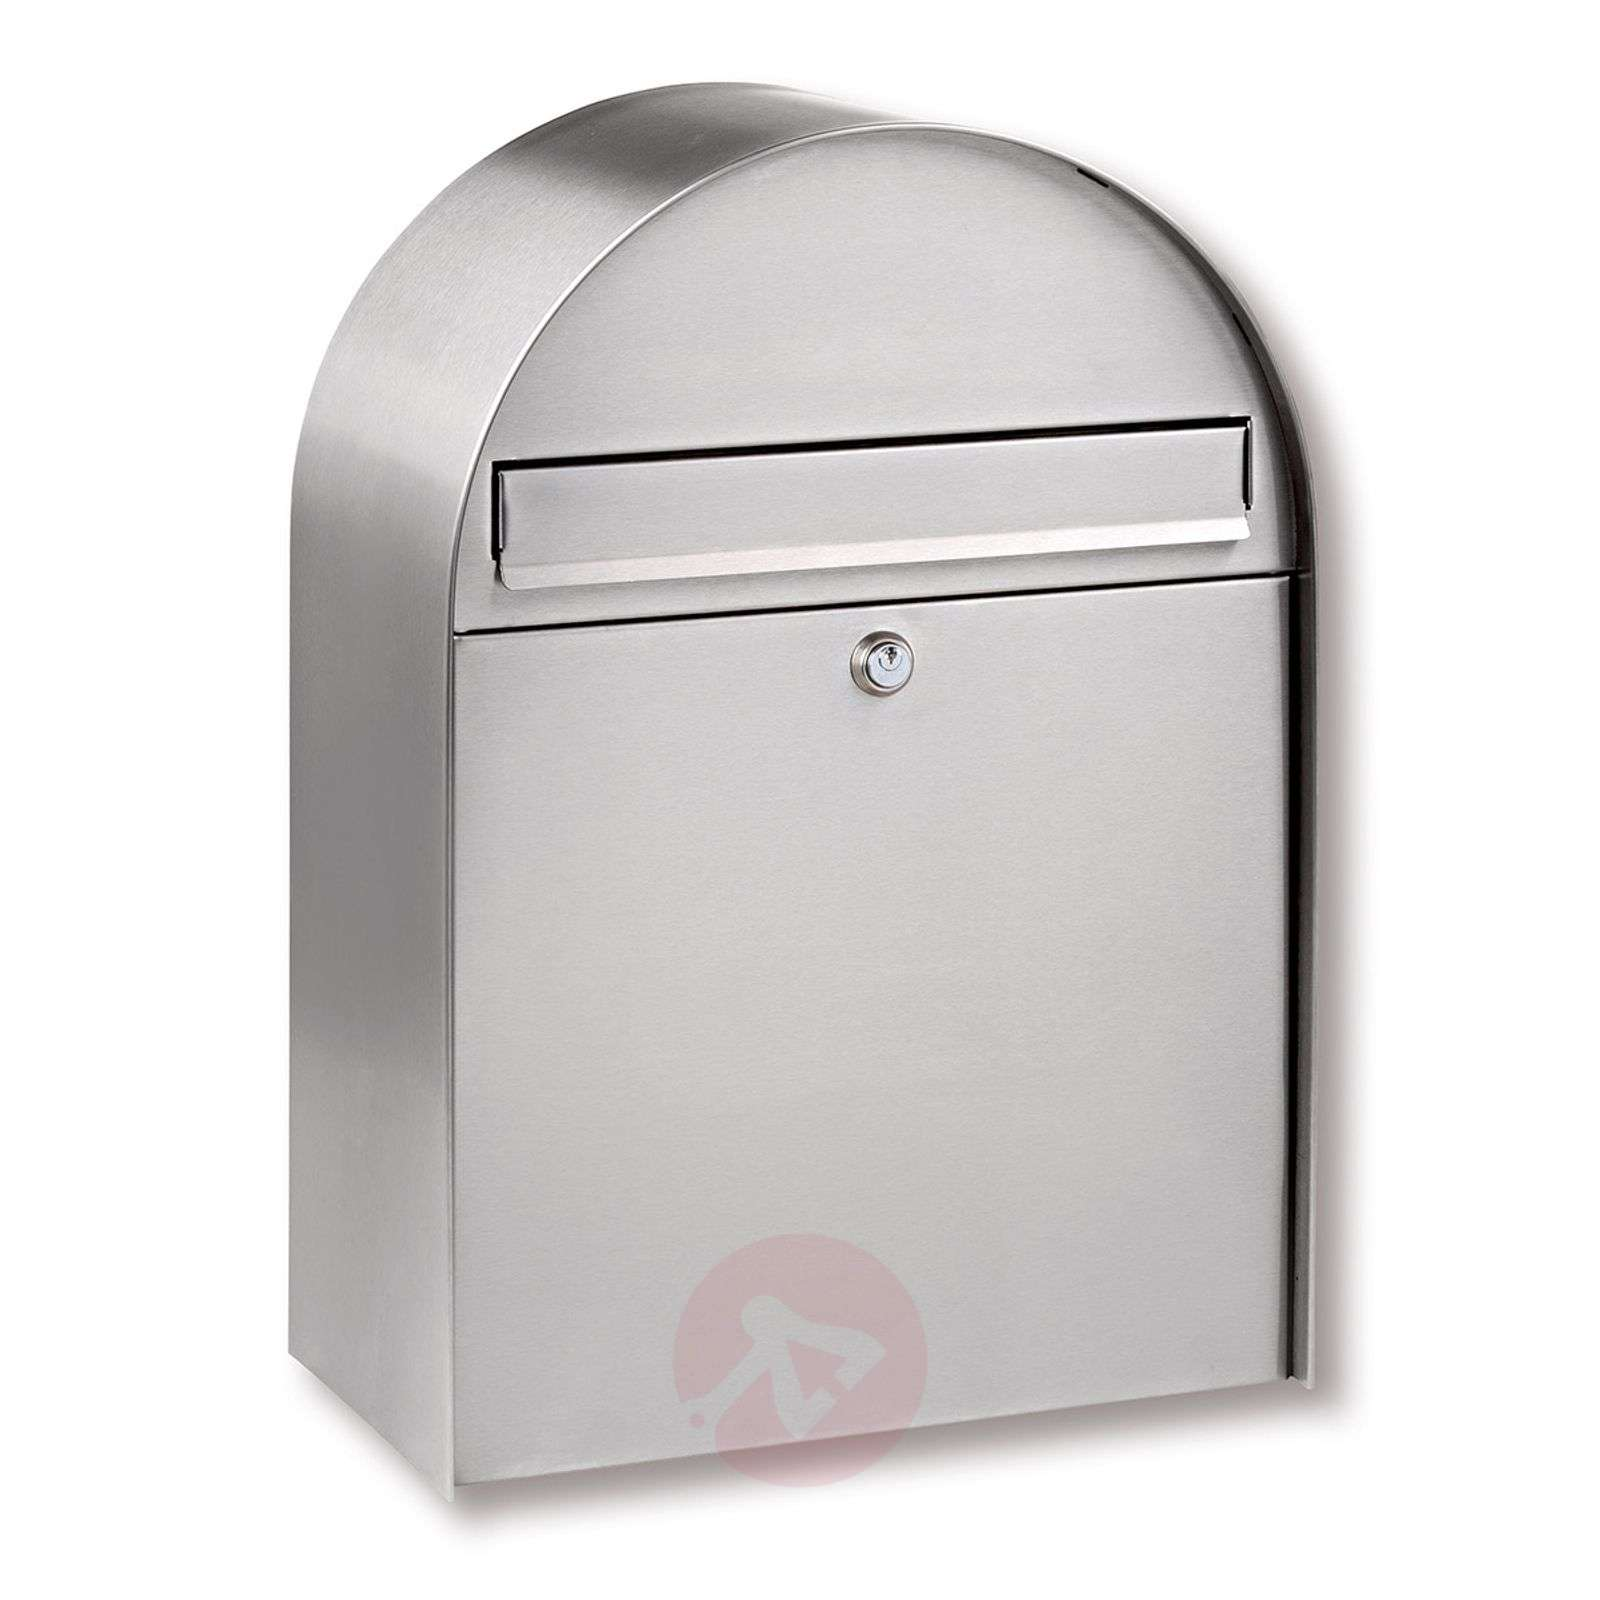 Large stainless steel letter box Nordic 3780 Ni-1532135-01